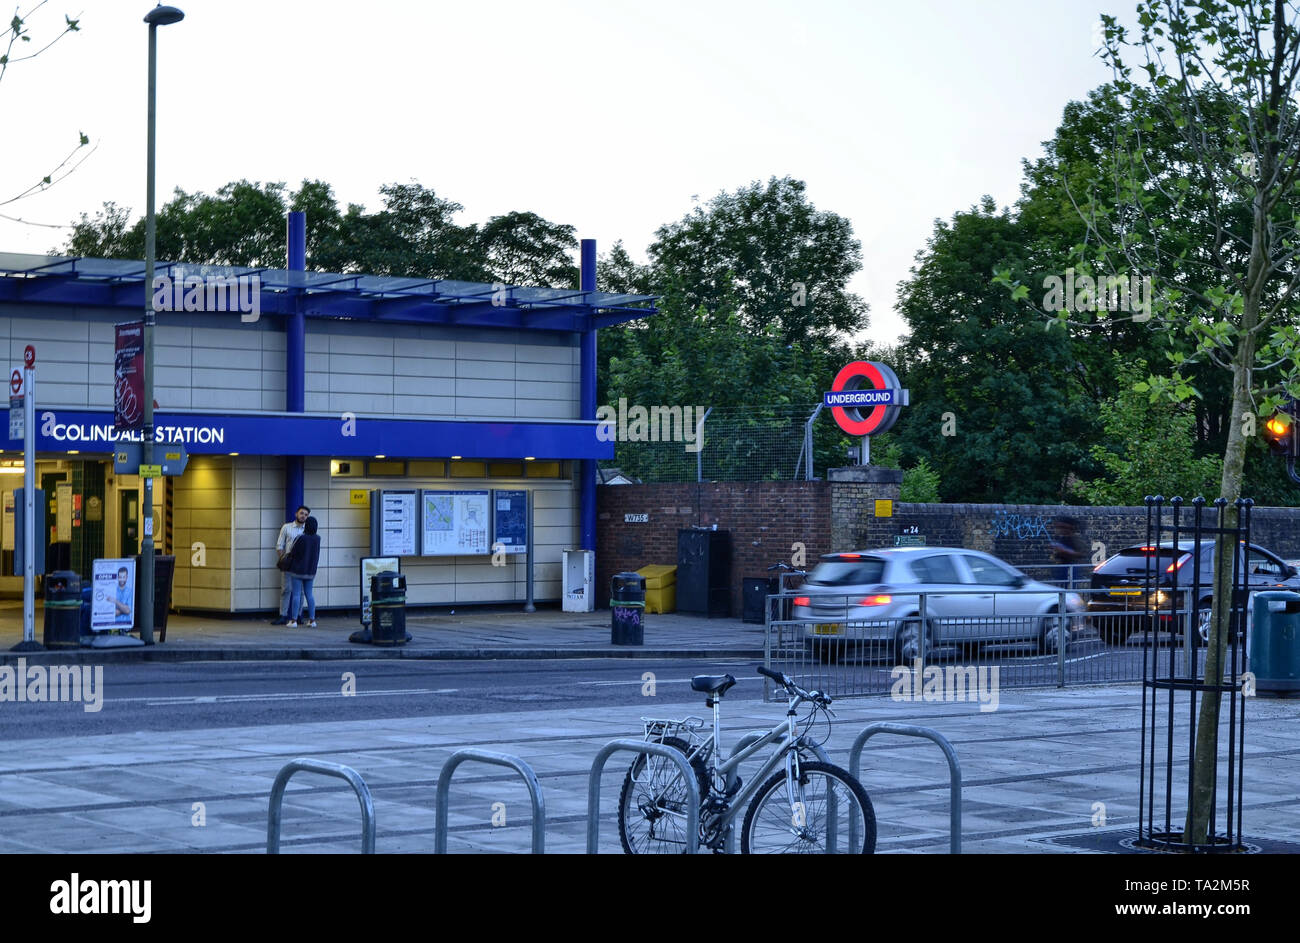 Colindale Tube Station Stock Photos & Colindale Tube Station